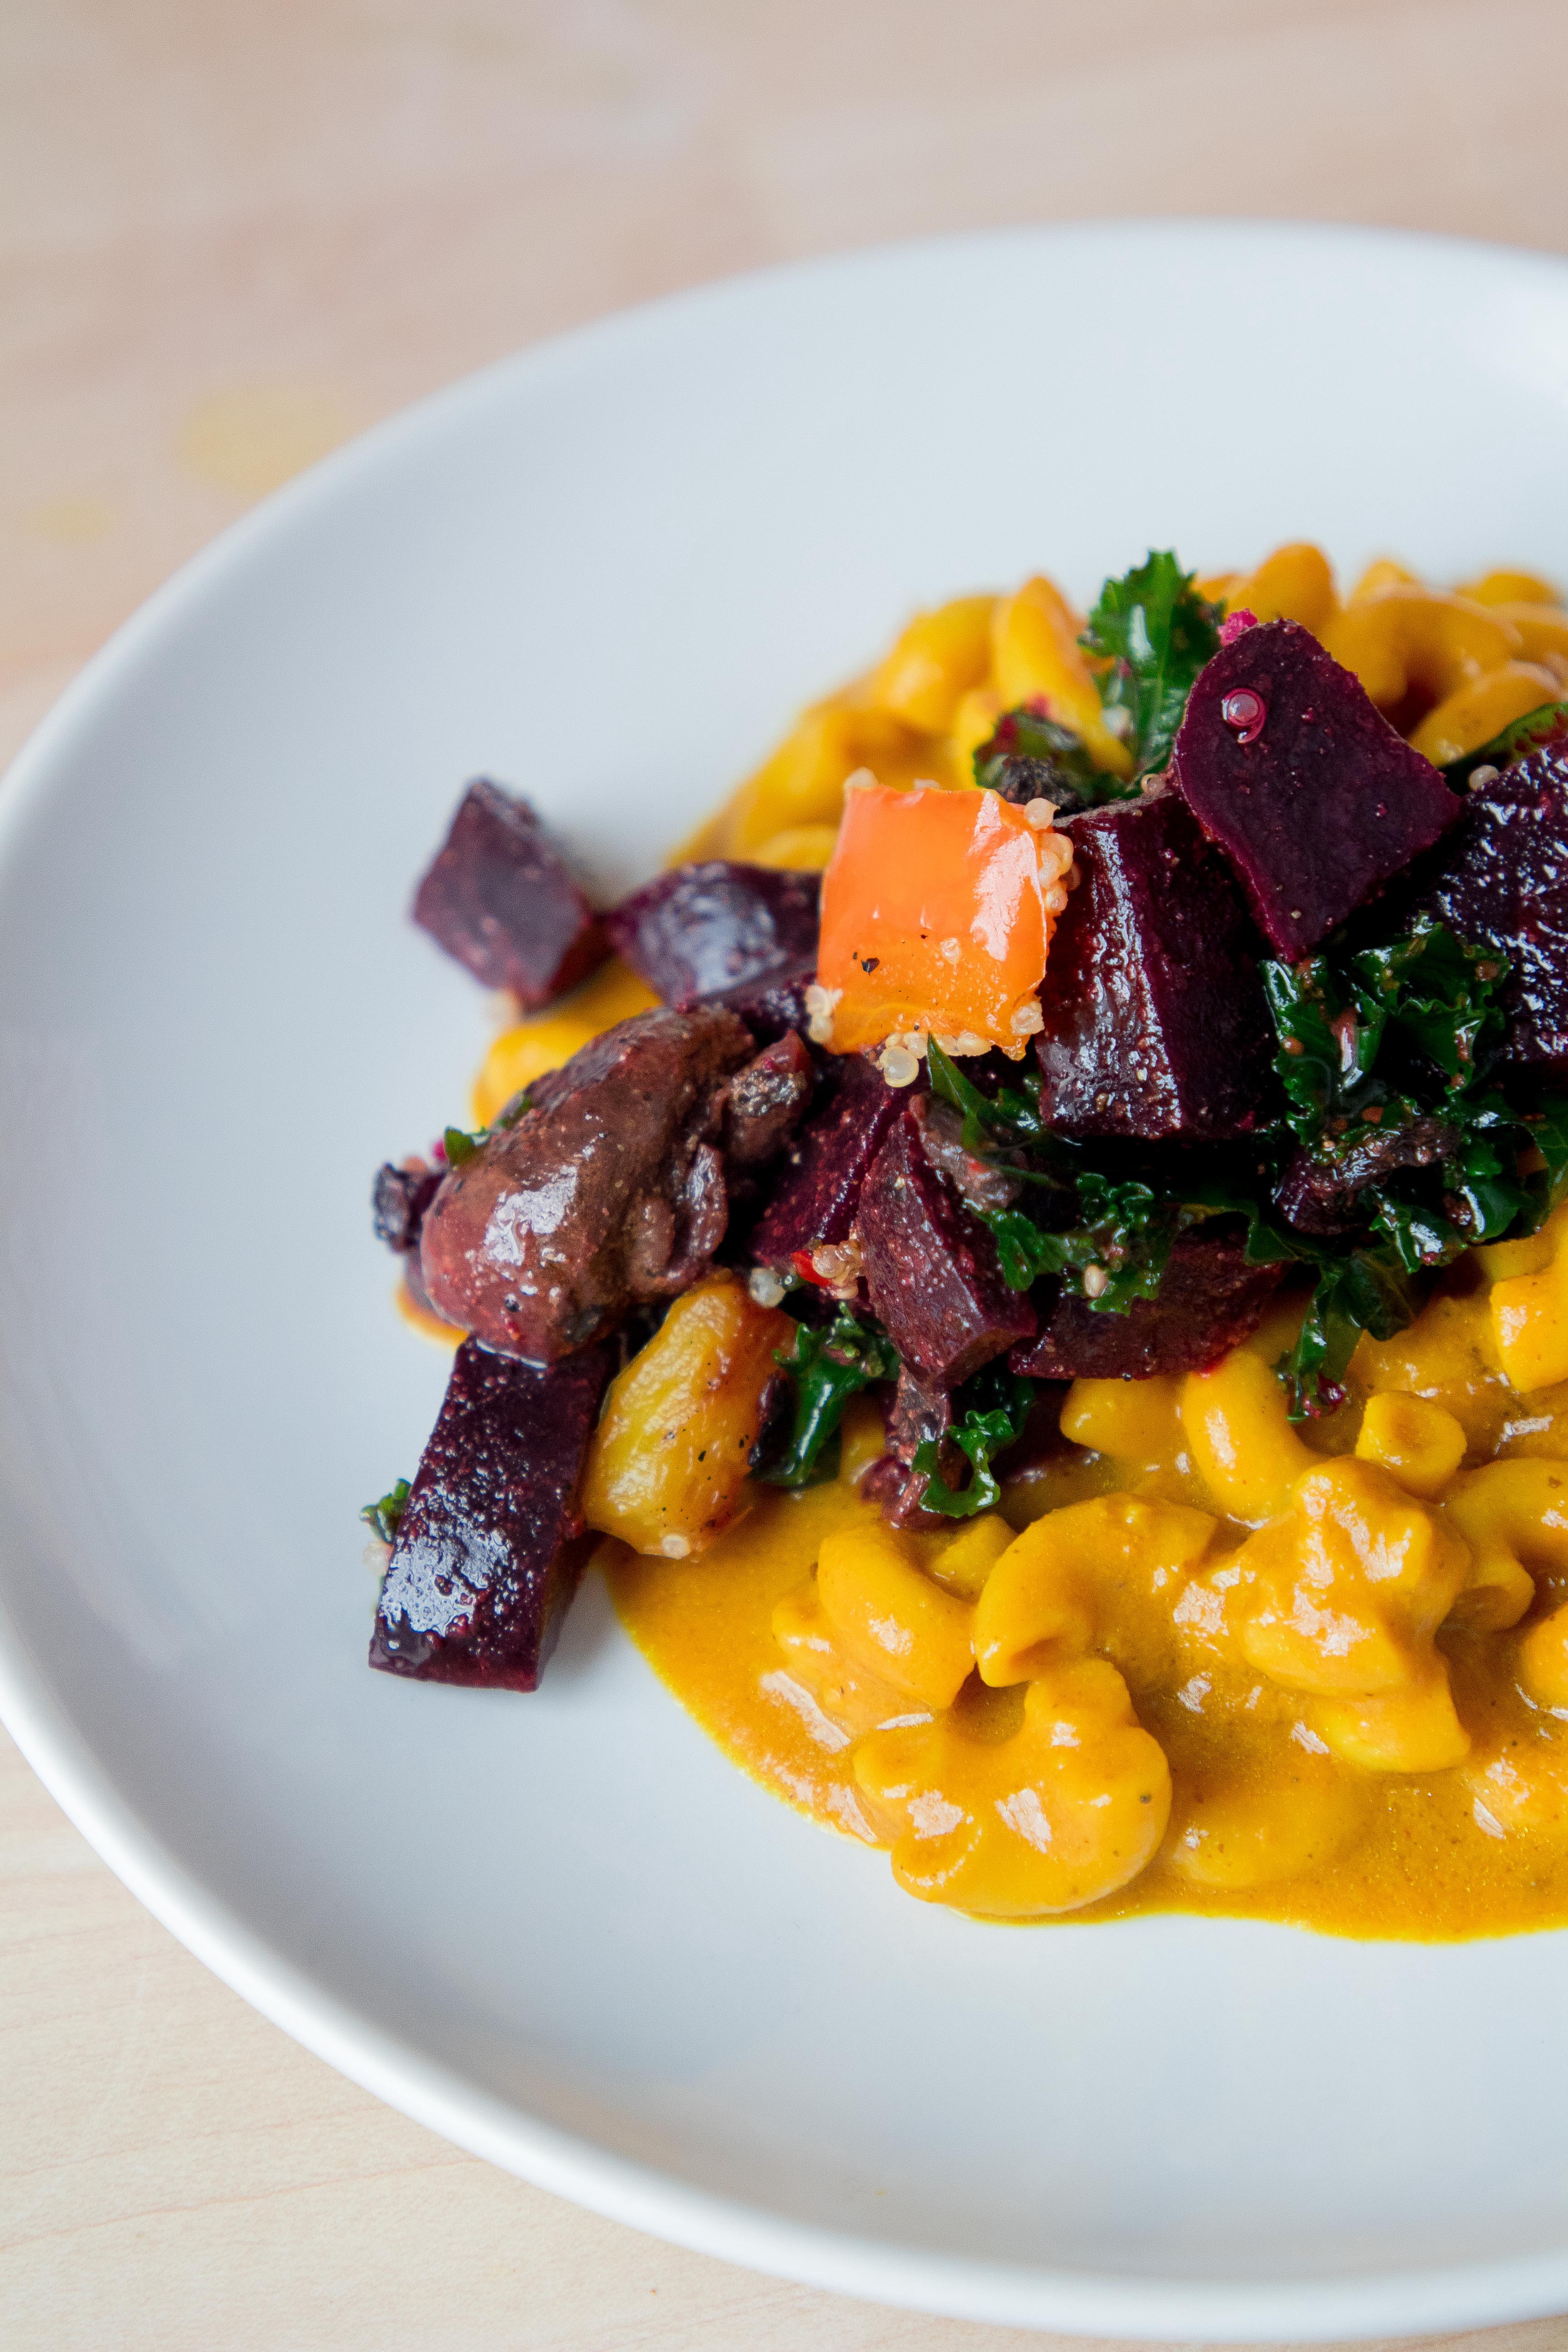 Vegan mac and cheese topped with beets